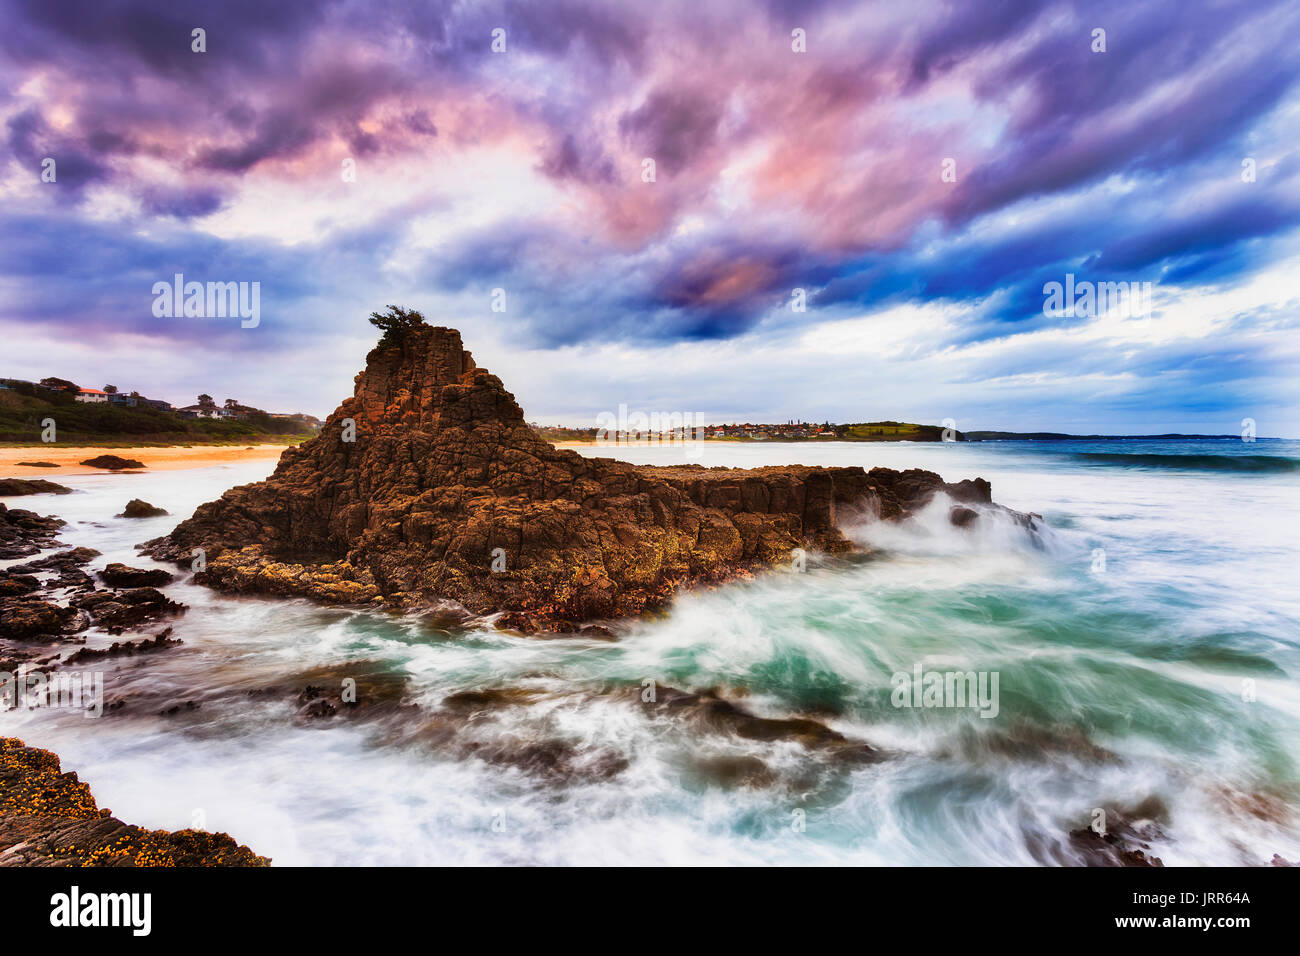 Rugged eroded detached rocky cliff off Kiama Bombo beach on Pacific coast of Australia at sunset with stormy weather. - Stock Image